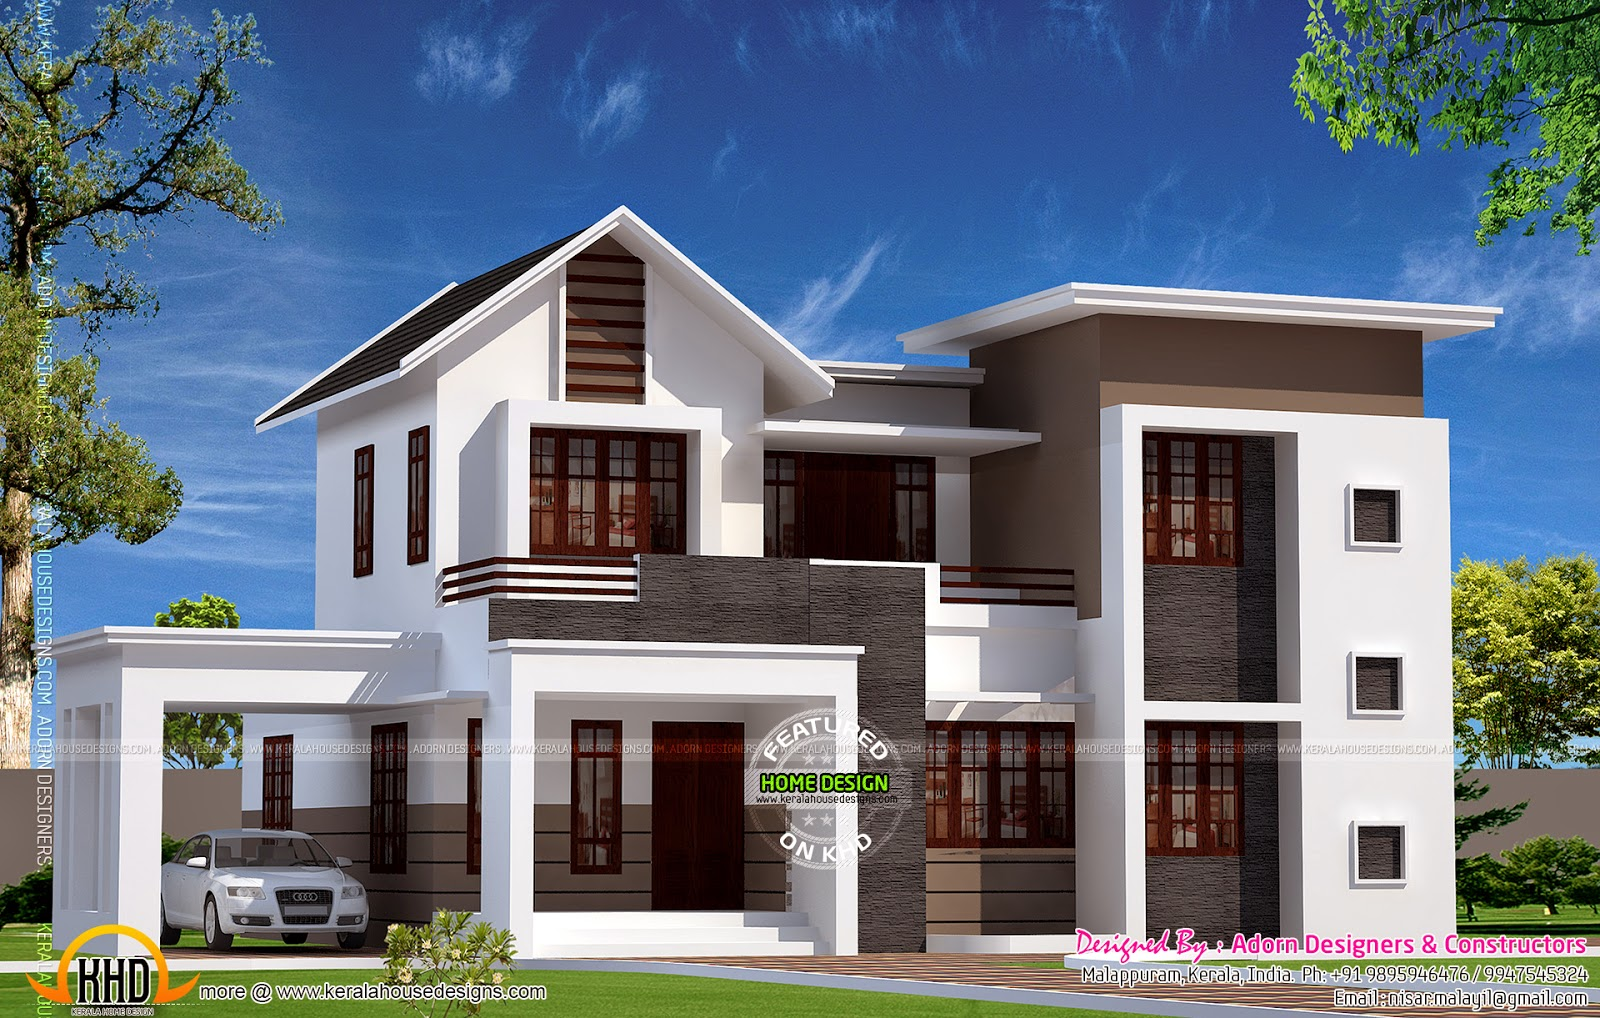 New house design in 1900 sq feet kerala home design and for New simple house design